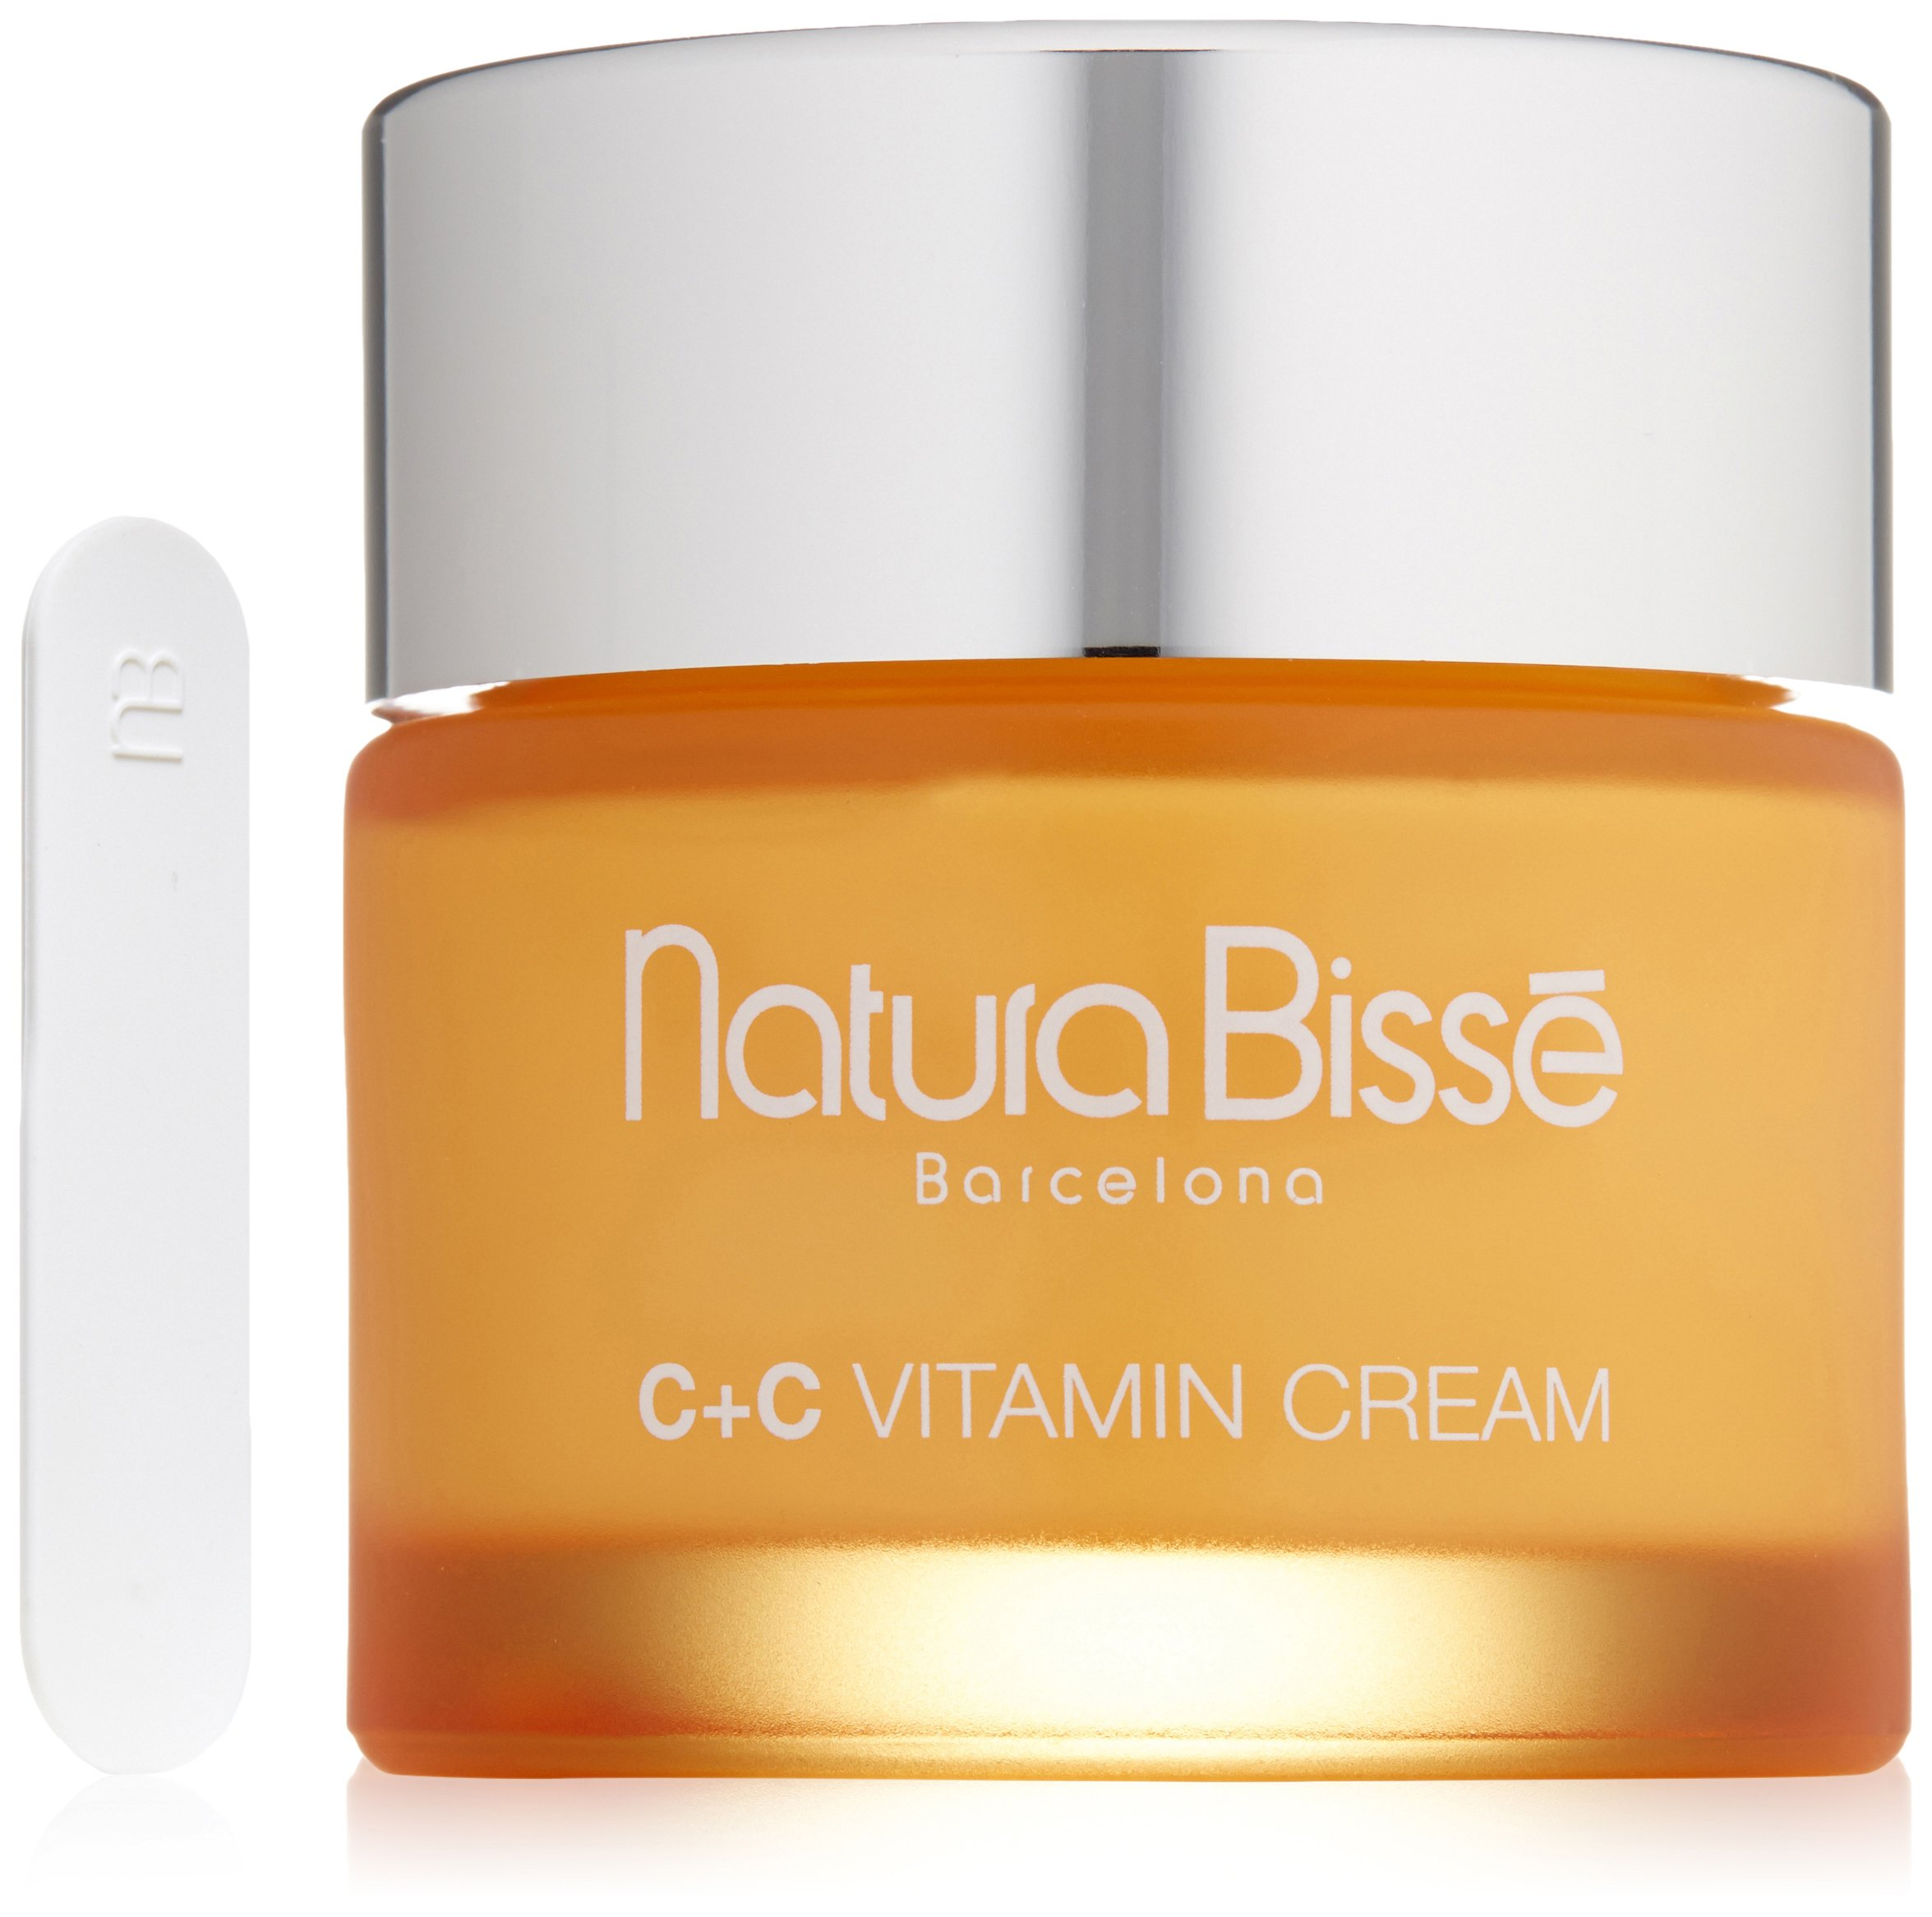 Natura Bisse C+C Vitamin Cream, 2.5 oz